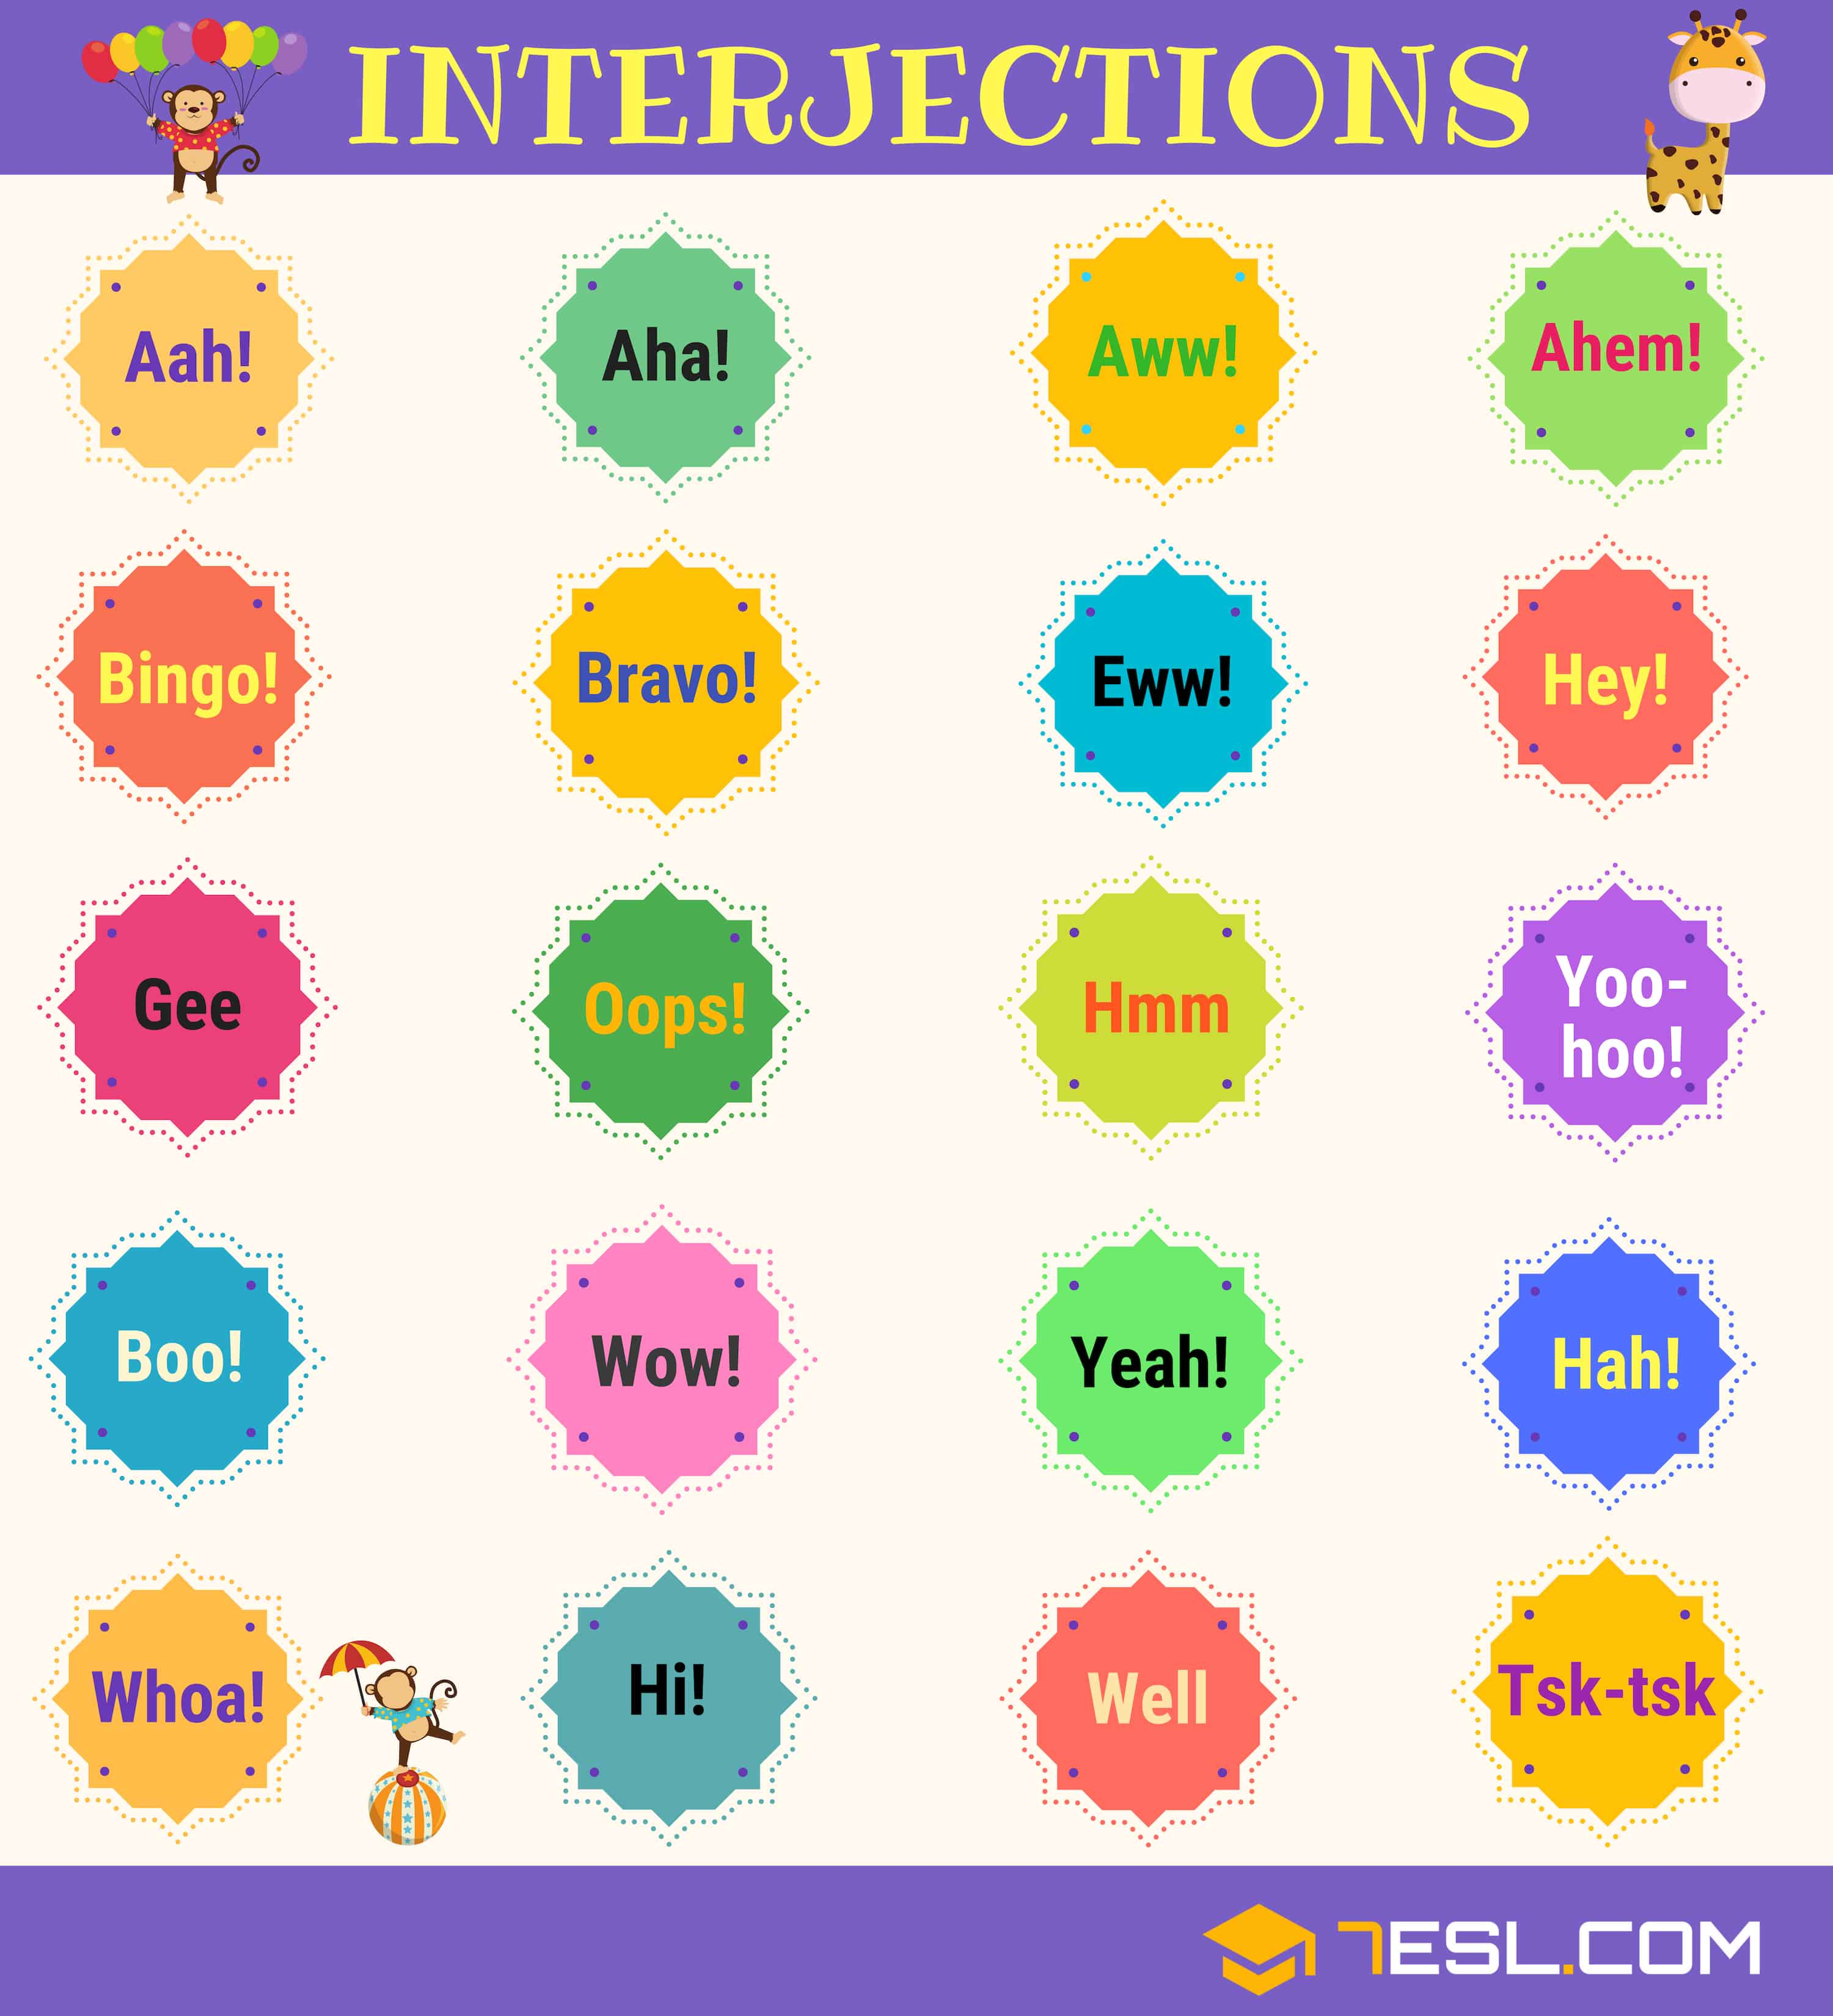 List of 60+ Interjections and Exclamations